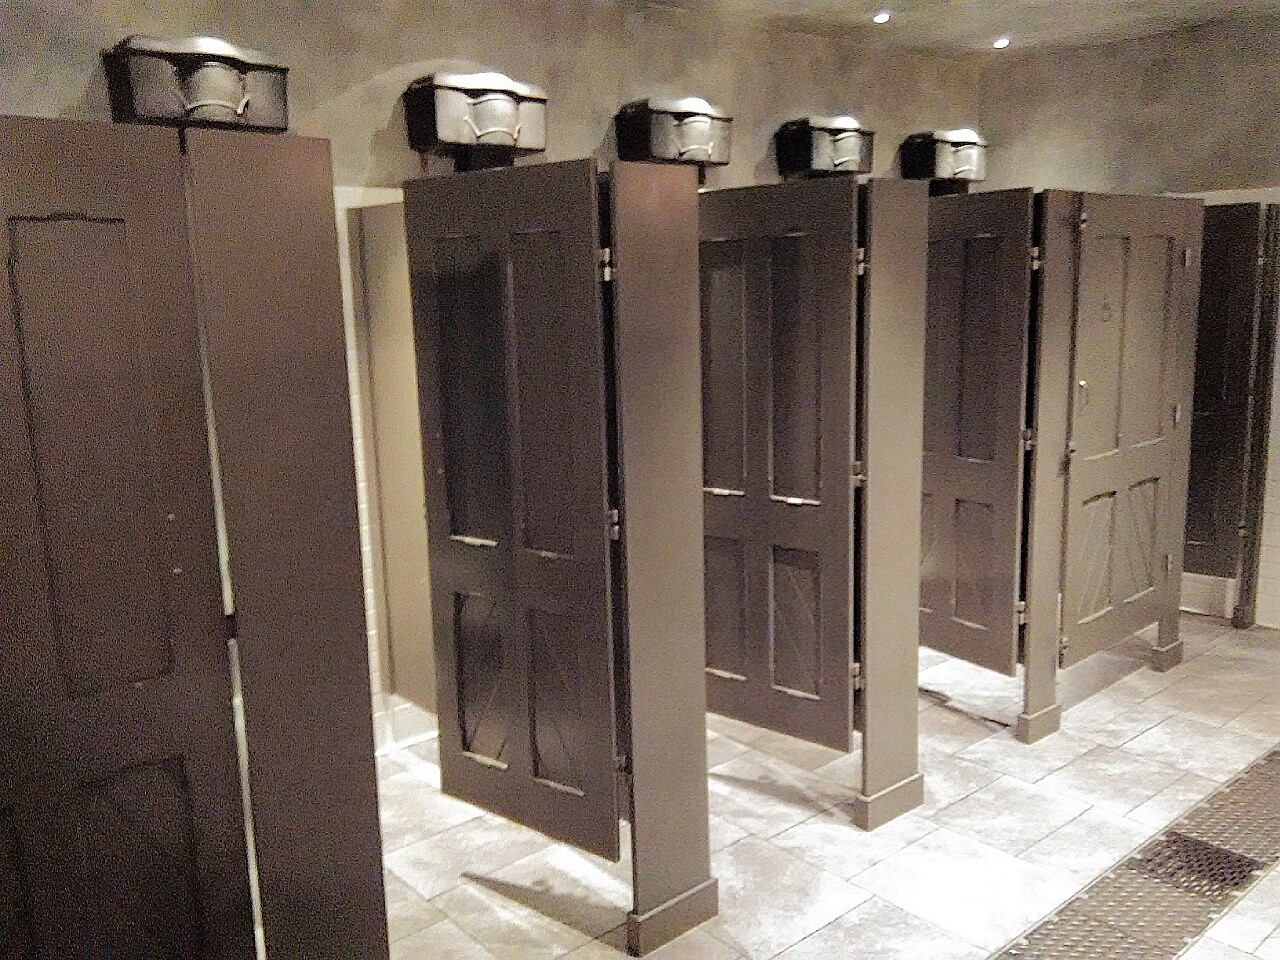 Moaning Myrtle in Wizarding World of Harry Potter Toilet Universal Studios Hollywood